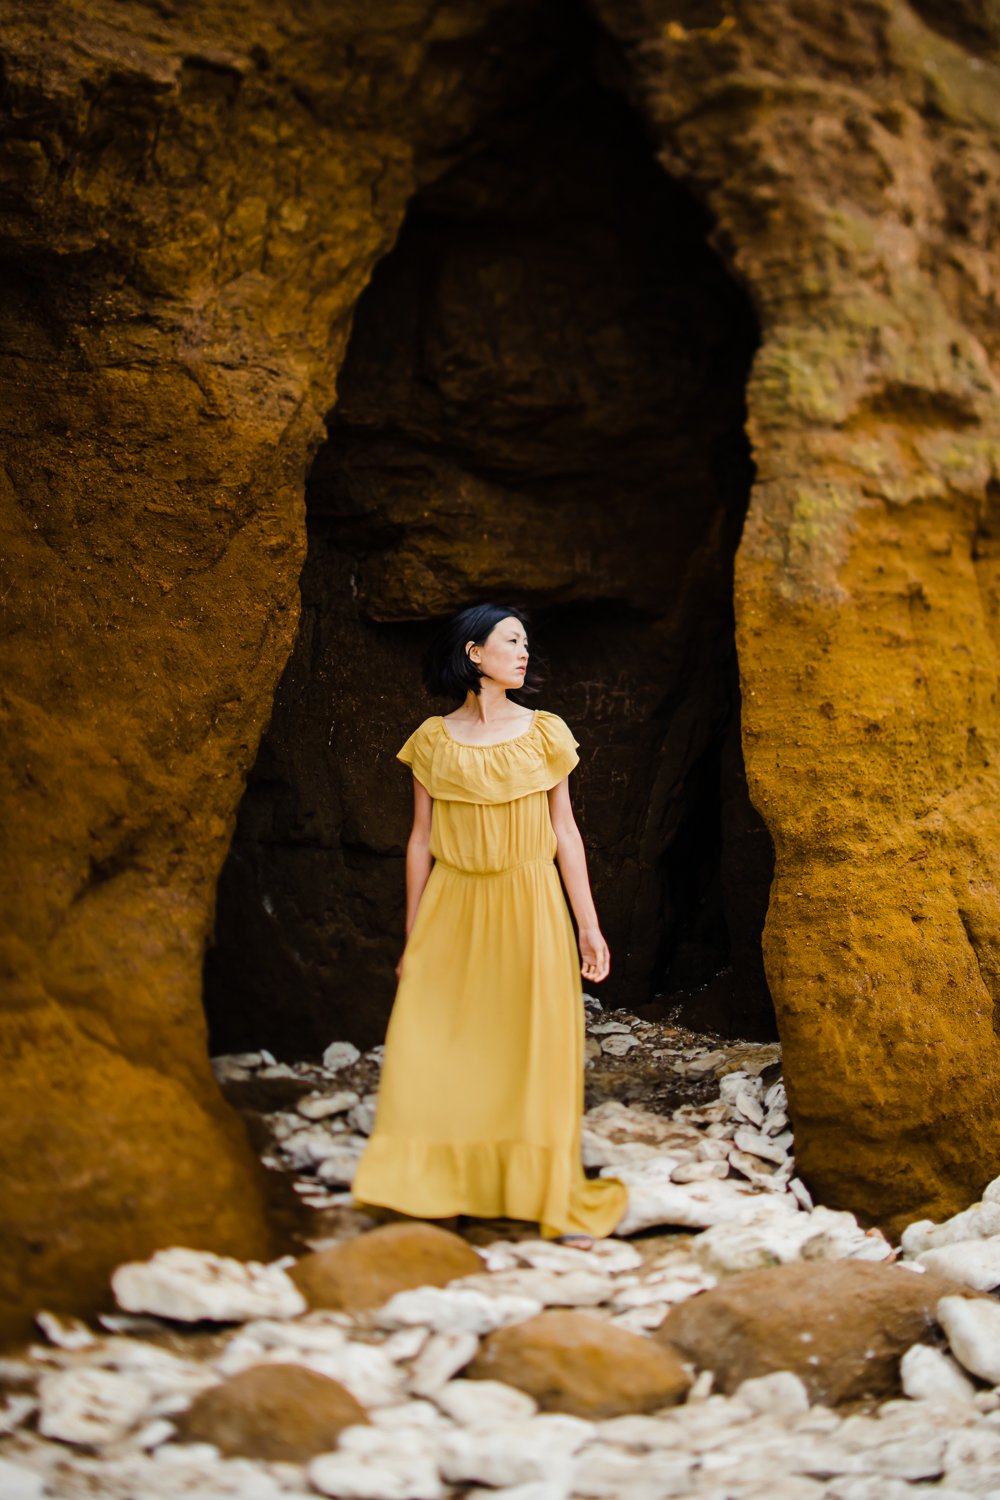 Colour portrait of Diana Hagues photographer in yellow dress at